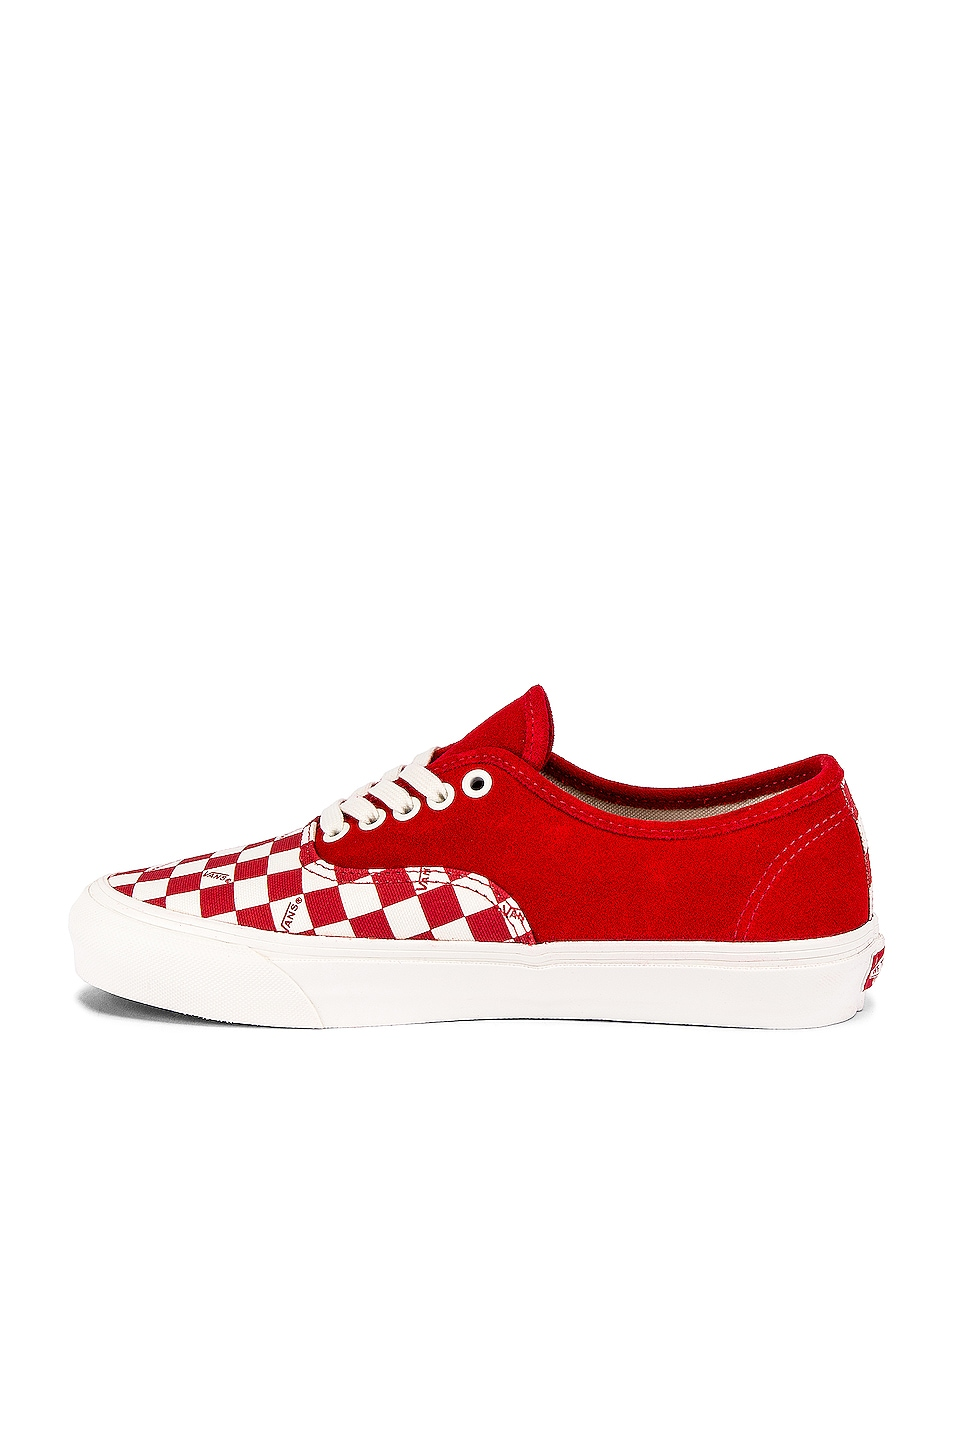 Image 5 of Vans Vault OG Authentic LX in Racing Red & Checkerboard